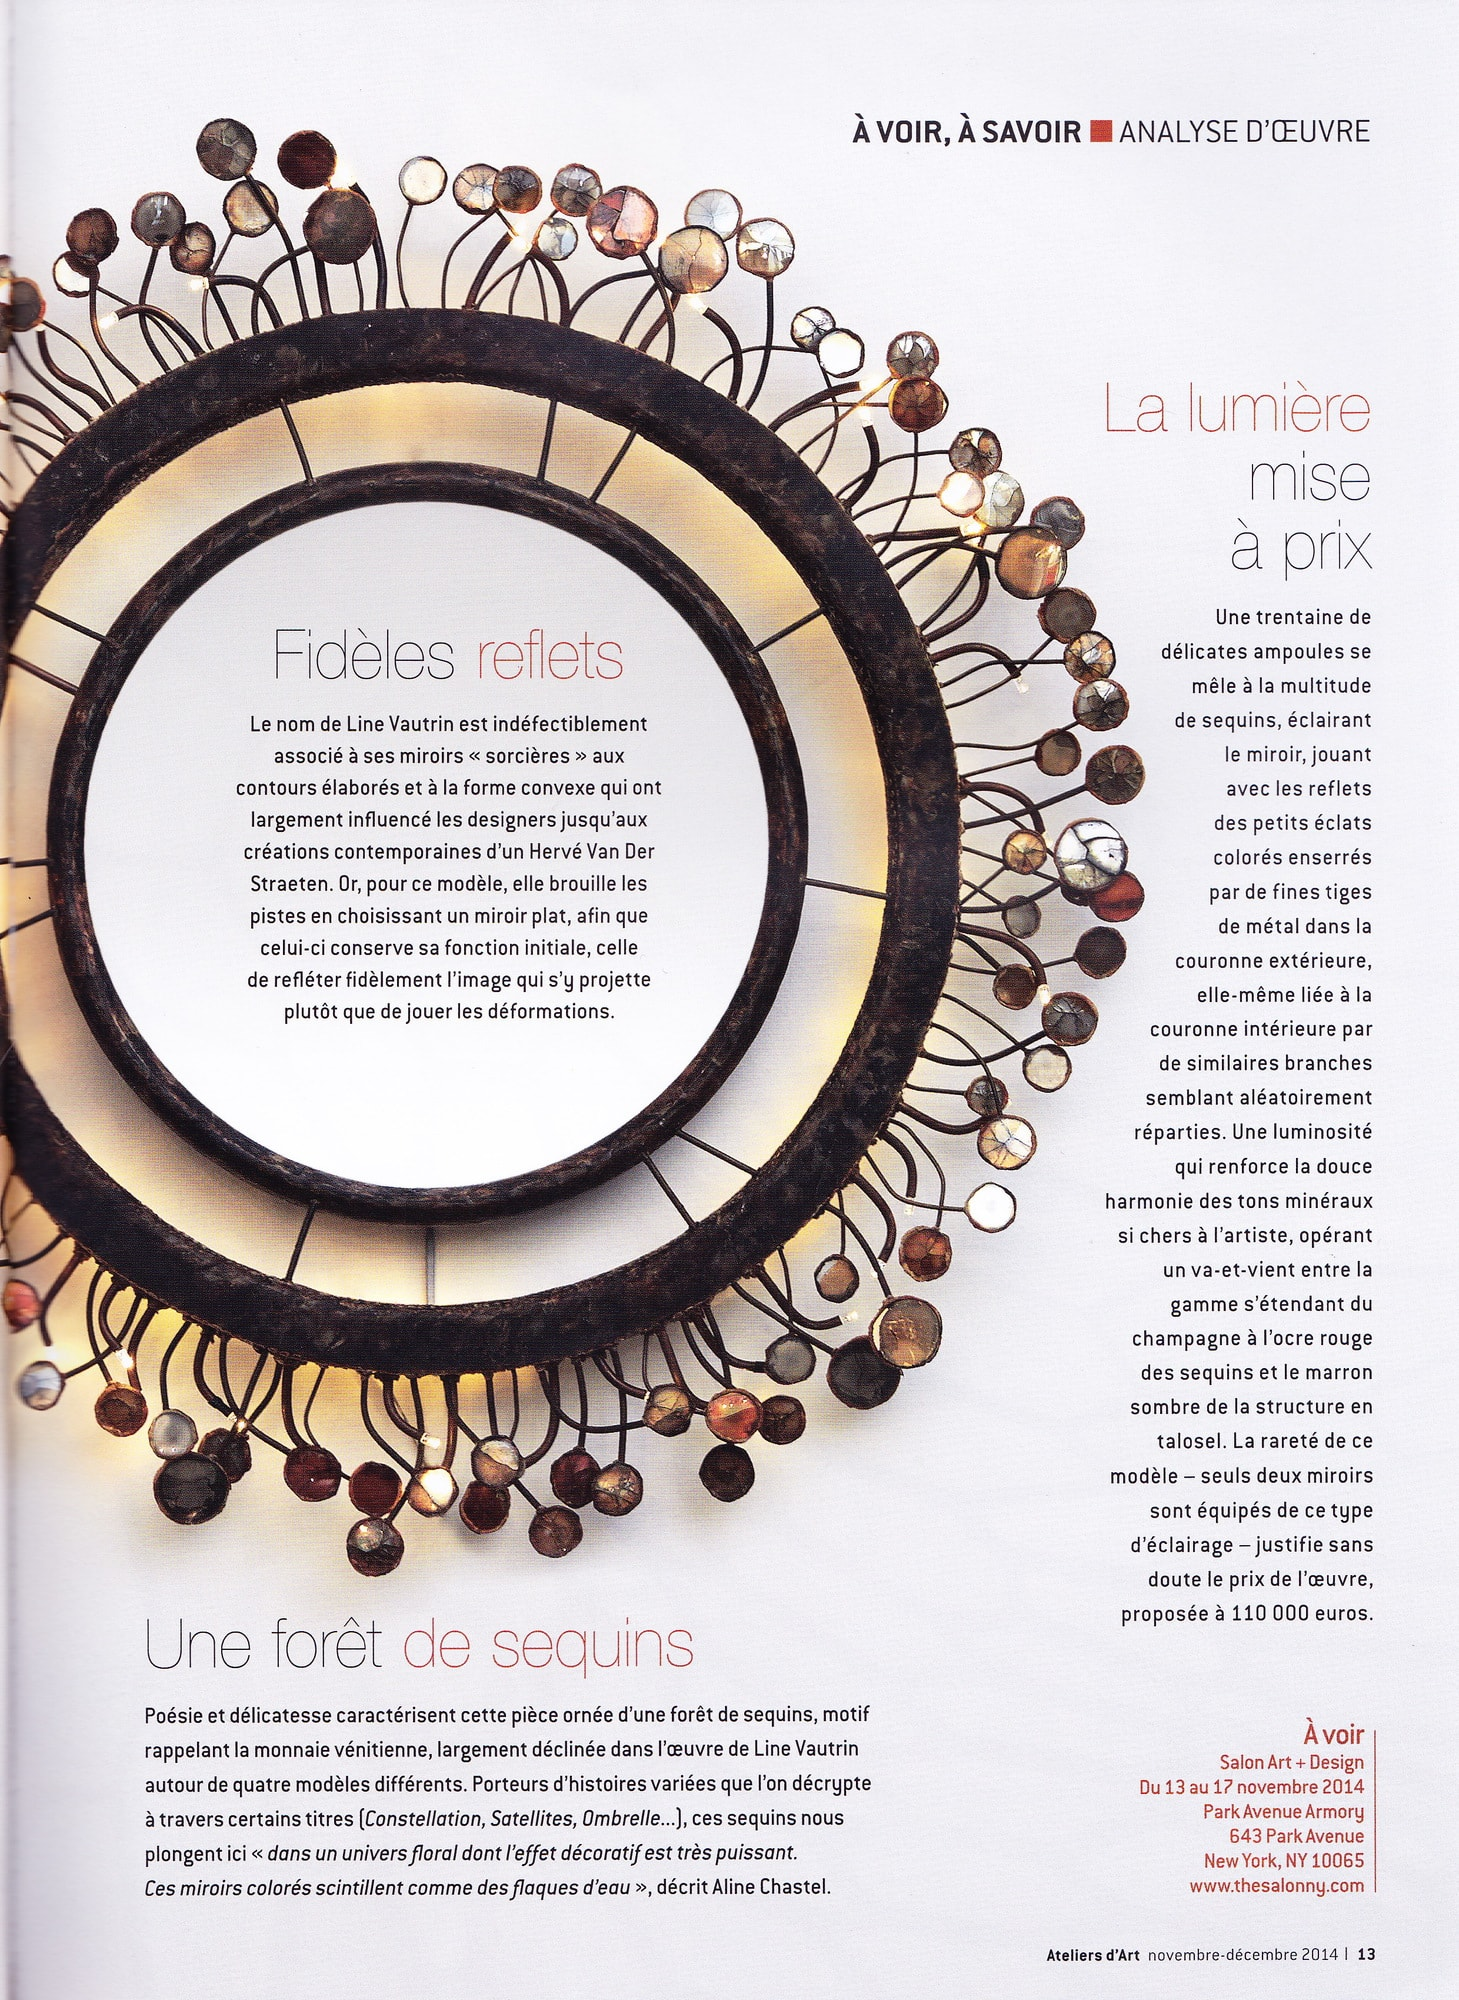 Ateliers d 39 art november december 2014 le miroir for Miroir jouve